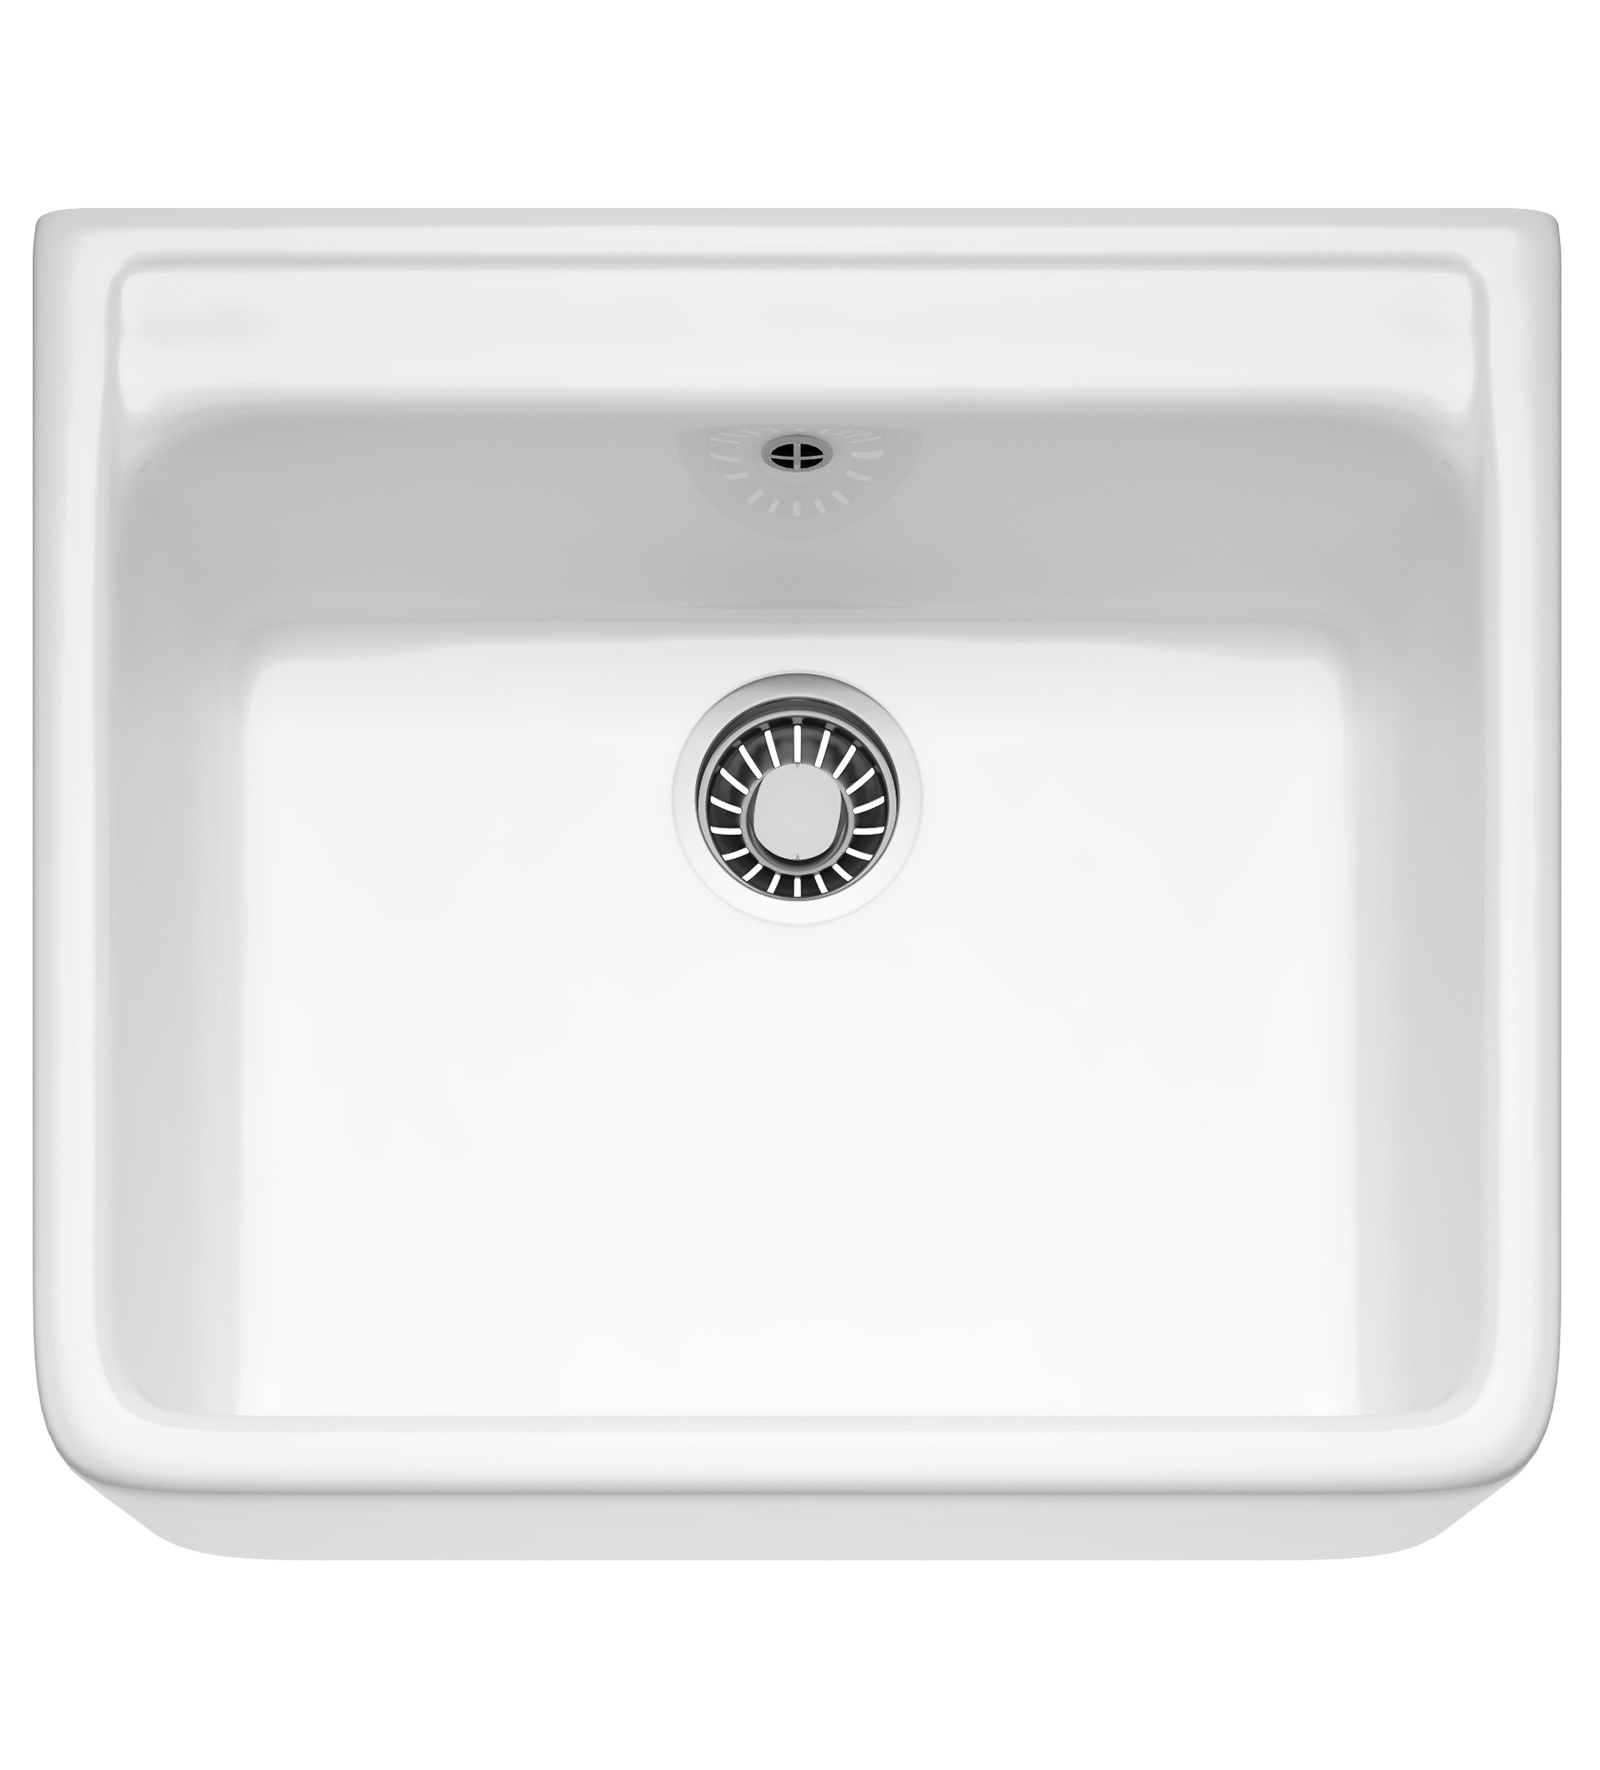 franke belfast vbk 710 ceramic 10 bowl white kitchen sink